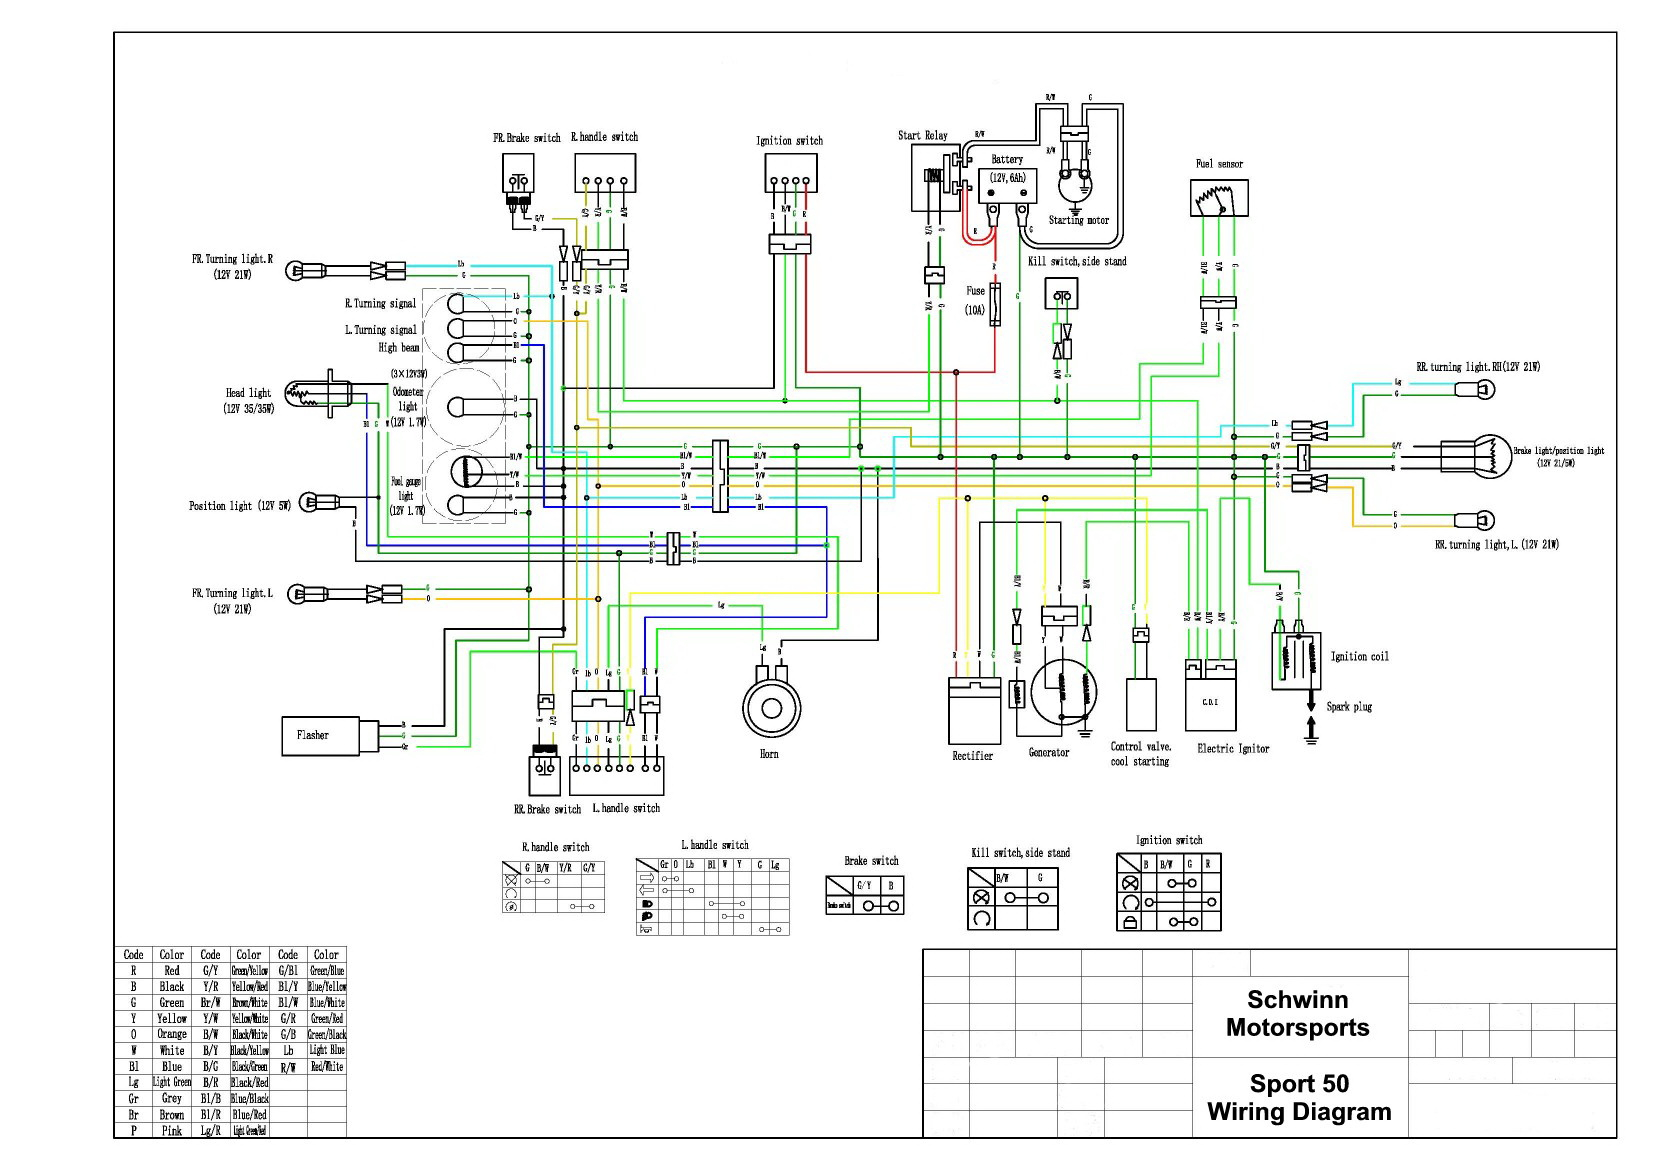 okin lift chair wiring diagram Collection-golden technologies lift chair wiring diagram Luxury Pride Lift Chair Parts Diagram 14-r